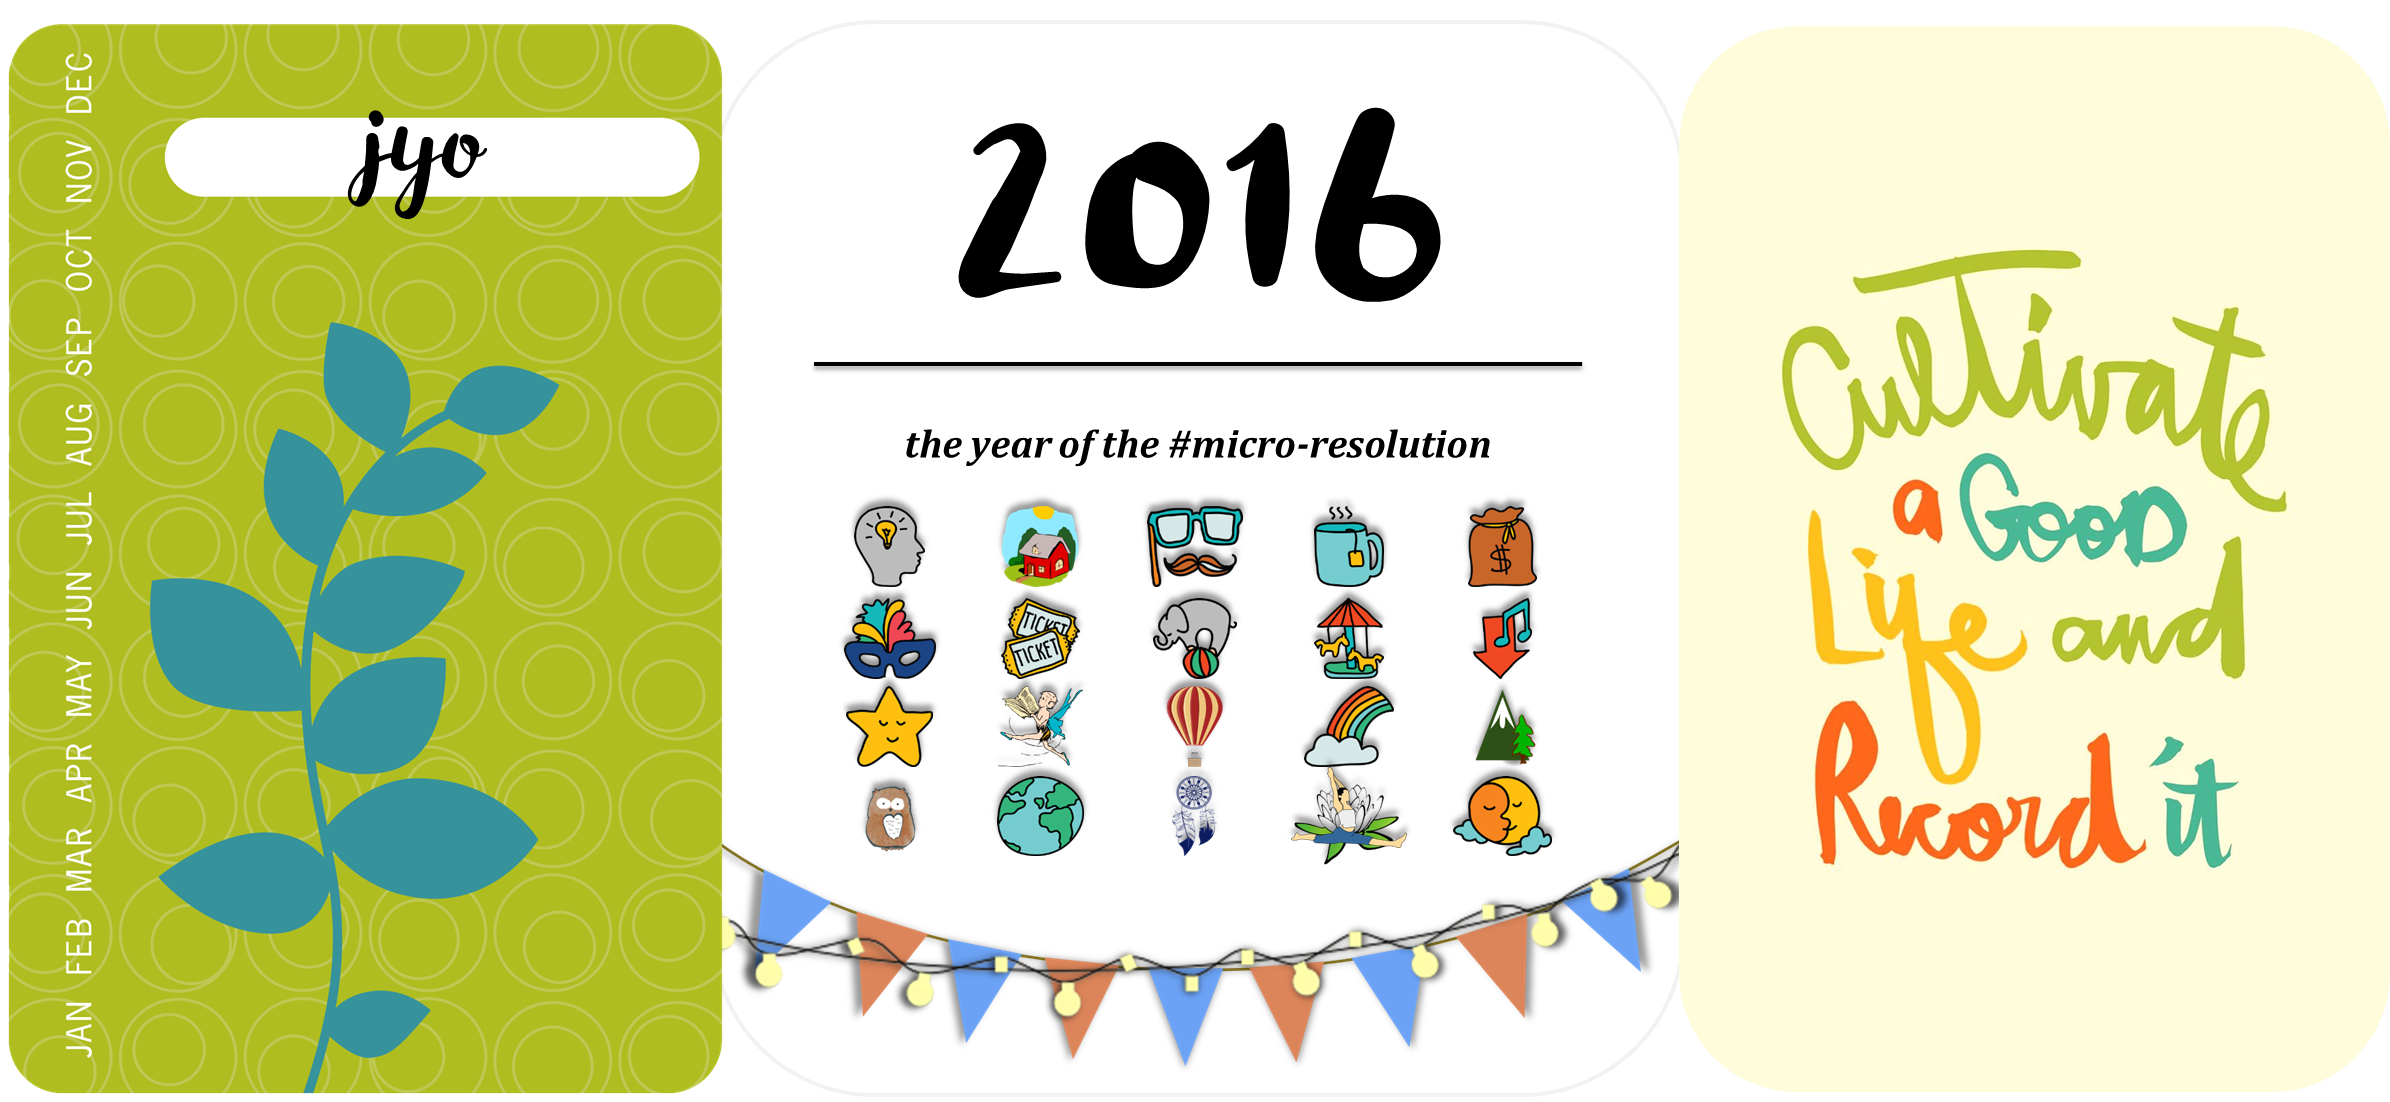 micro resolution, microresolution, resolution, resolution 2016, micro resolution 2016, 2016, goals, intentions, new year resolutions, habits, goal setting, project life, mindfulness, jyo, pumpernickel pixie